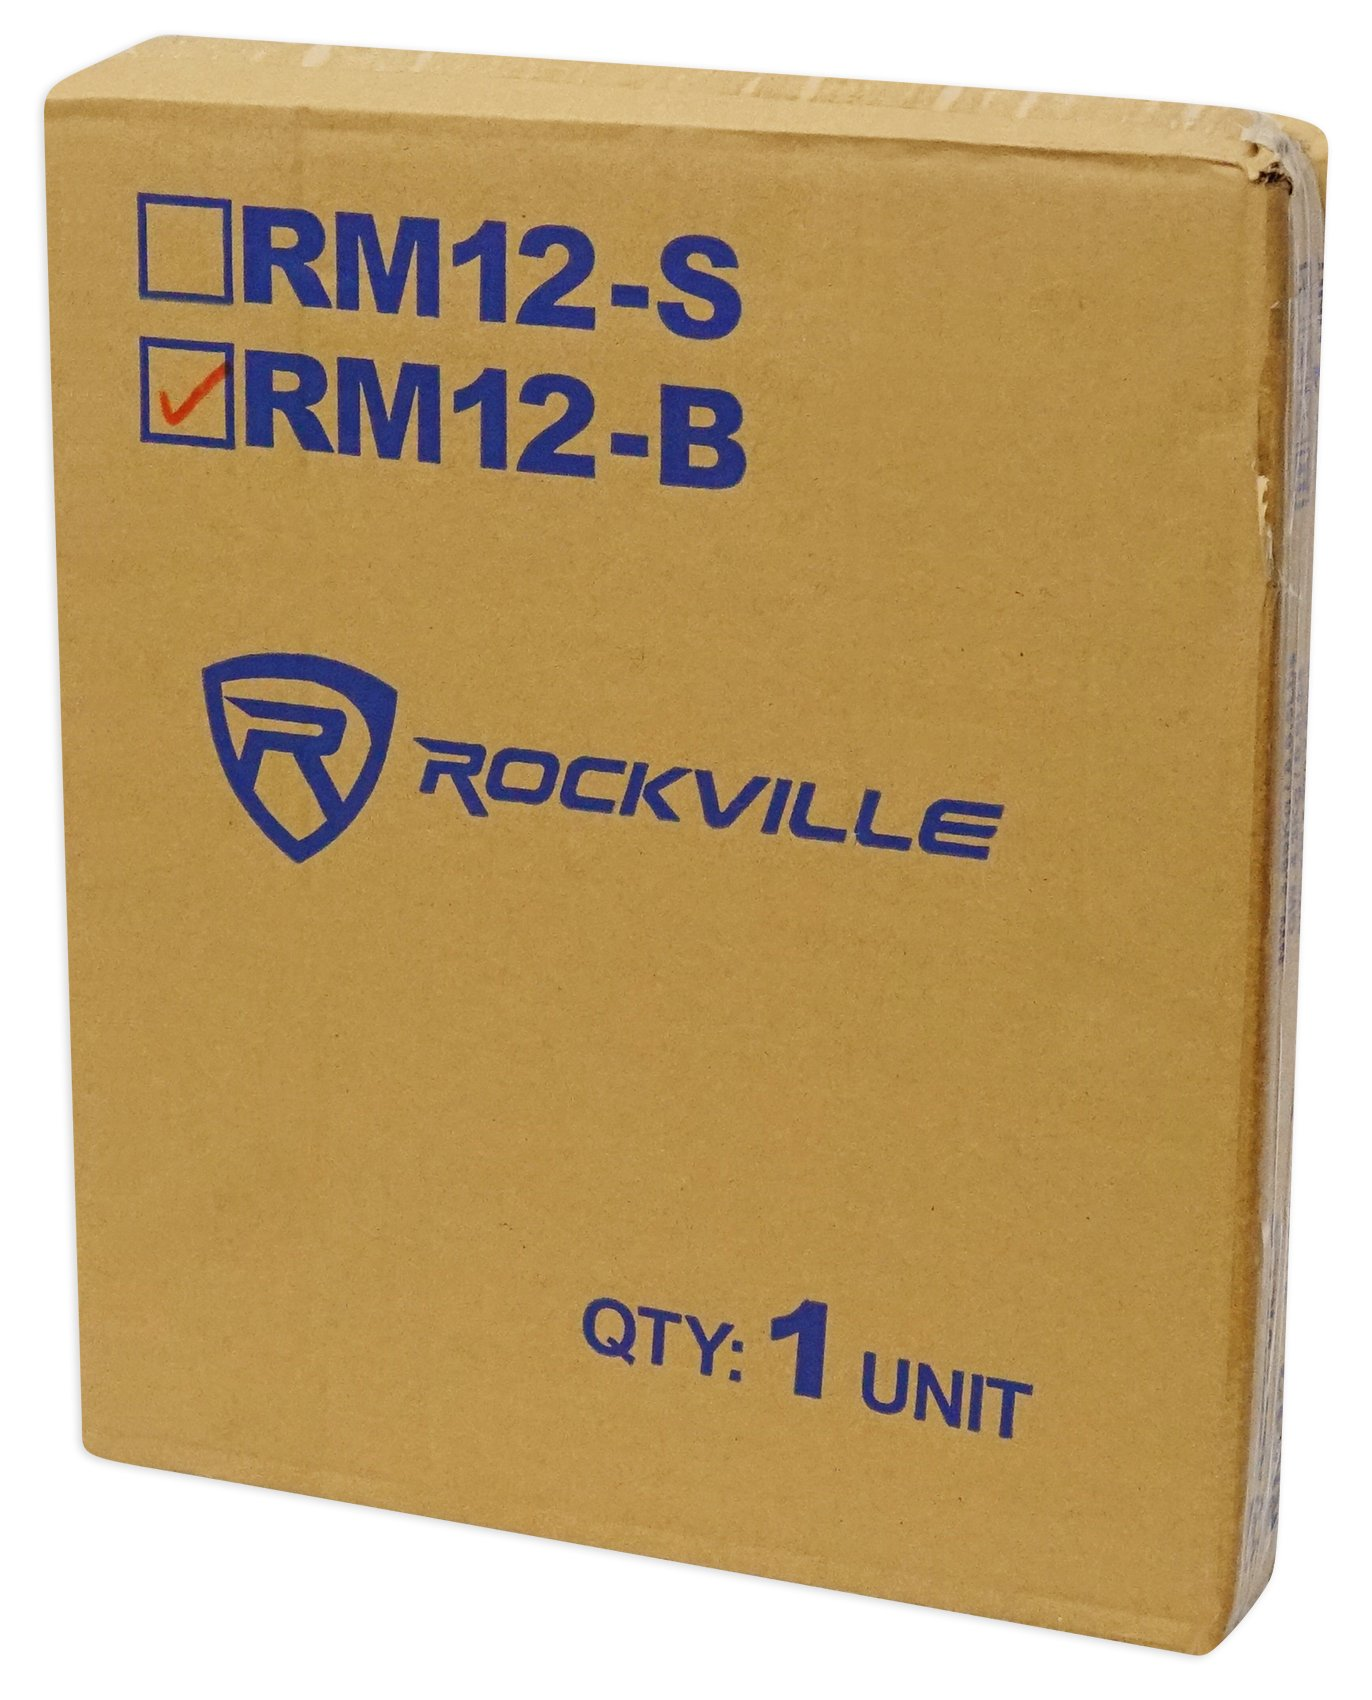 Rockville Rockmat RM12-B 12 Sq Ft Sound Dampening/Deadening Butyl Rubber Car Kit by Rockville (Image #8)